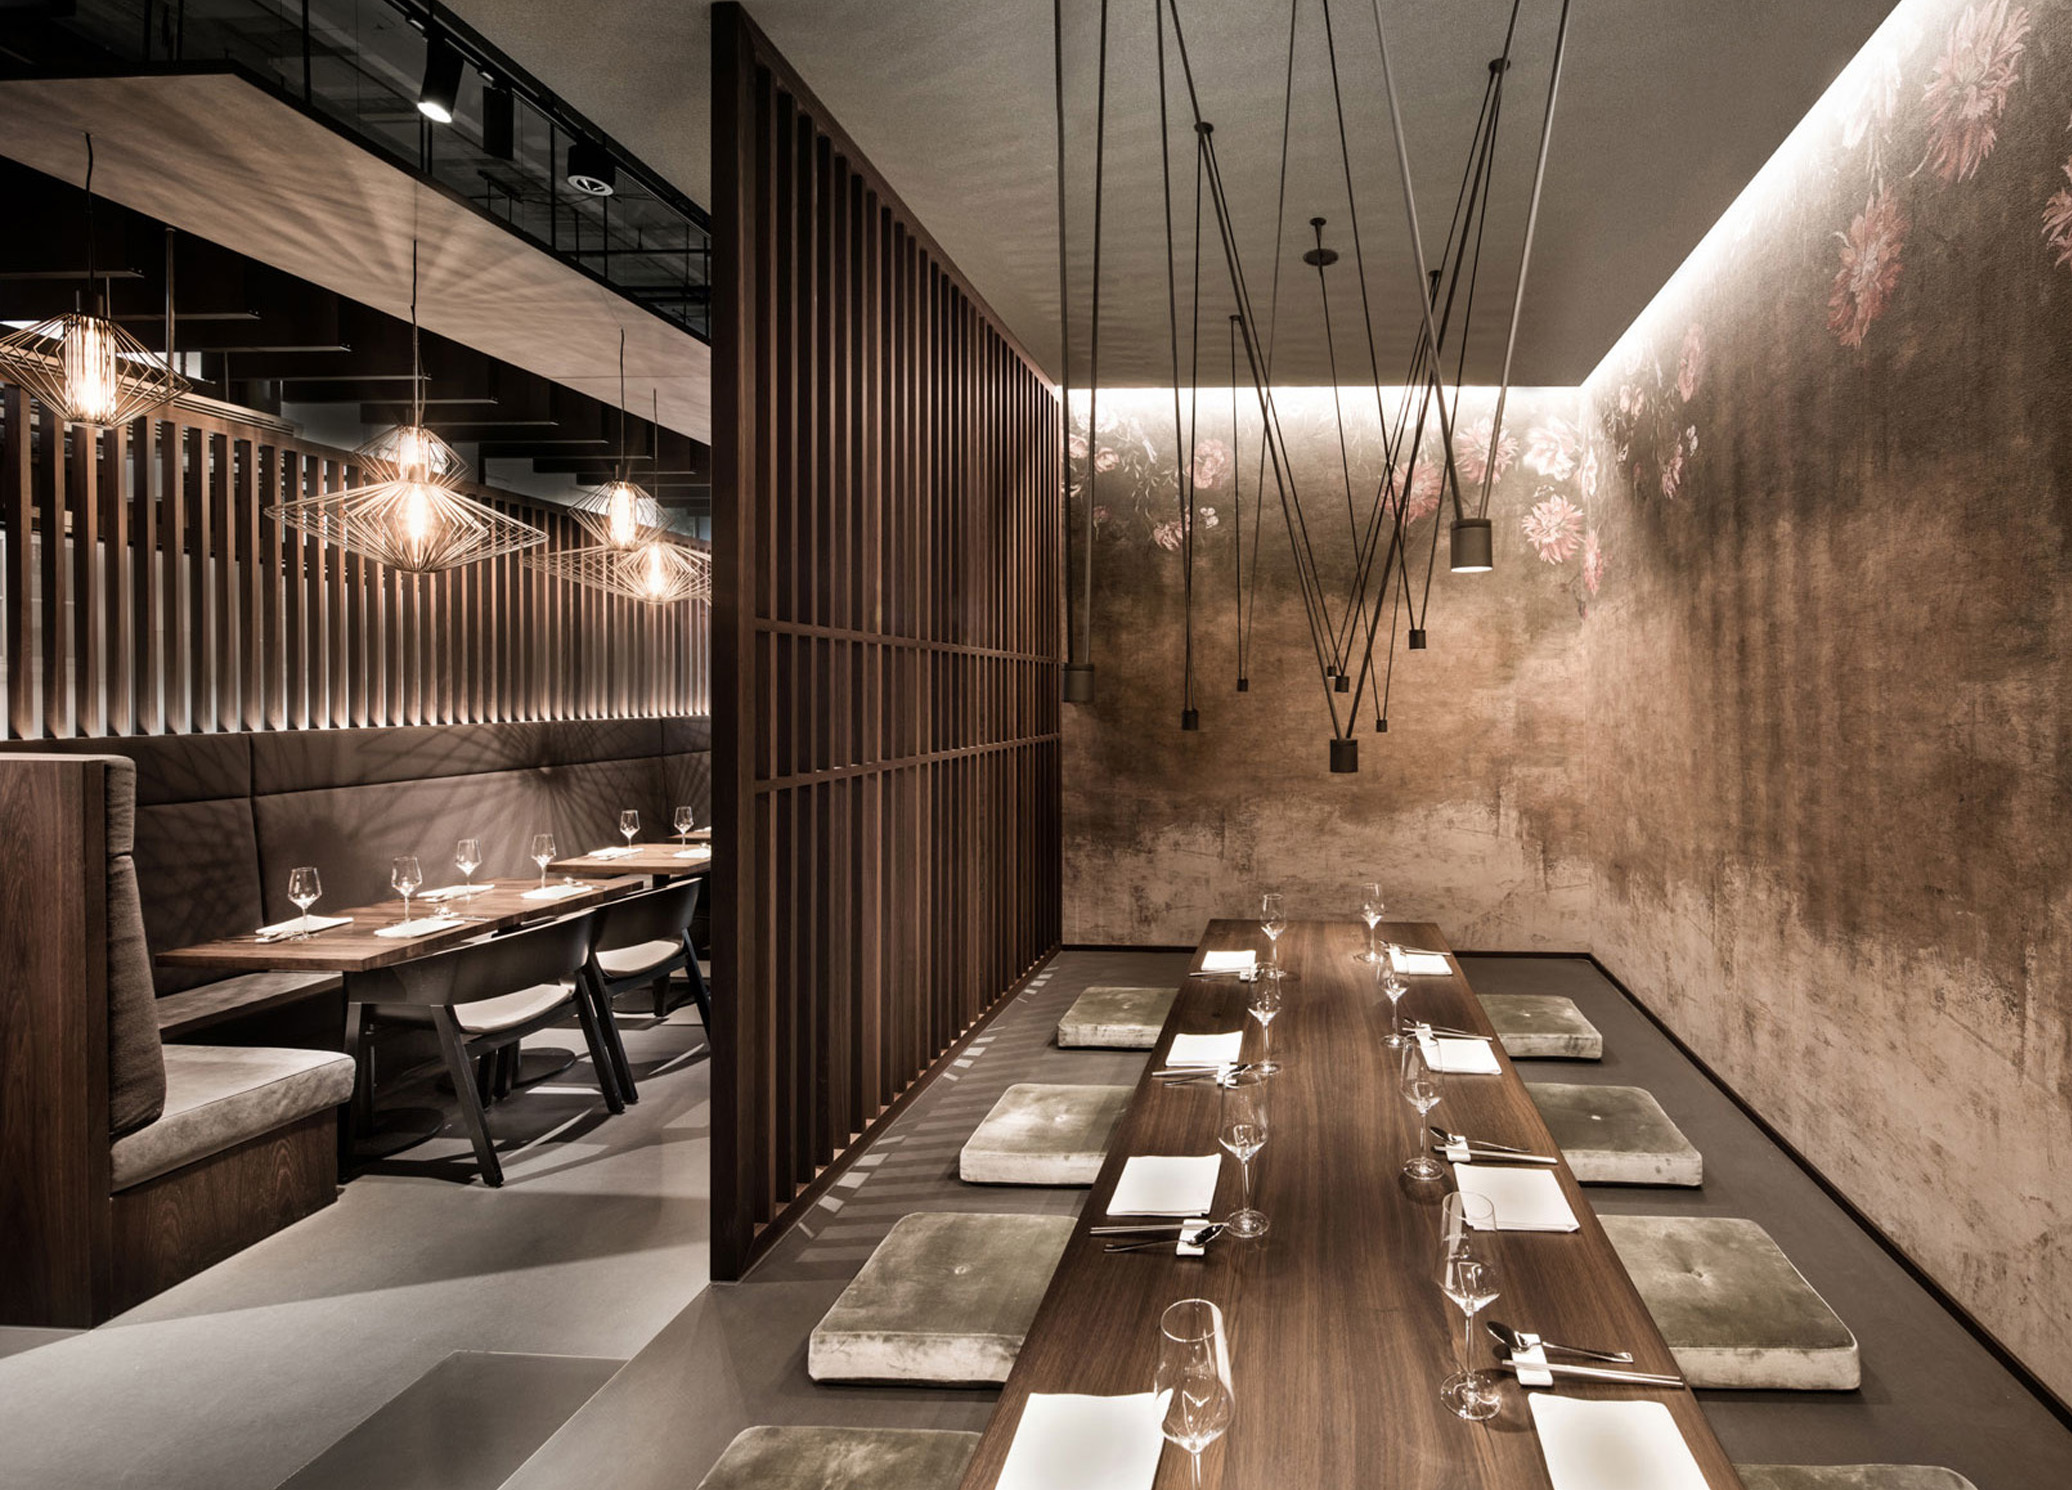 Quot Enso Sushi And Grill Quot Offers Seat Variations In Dark Wood